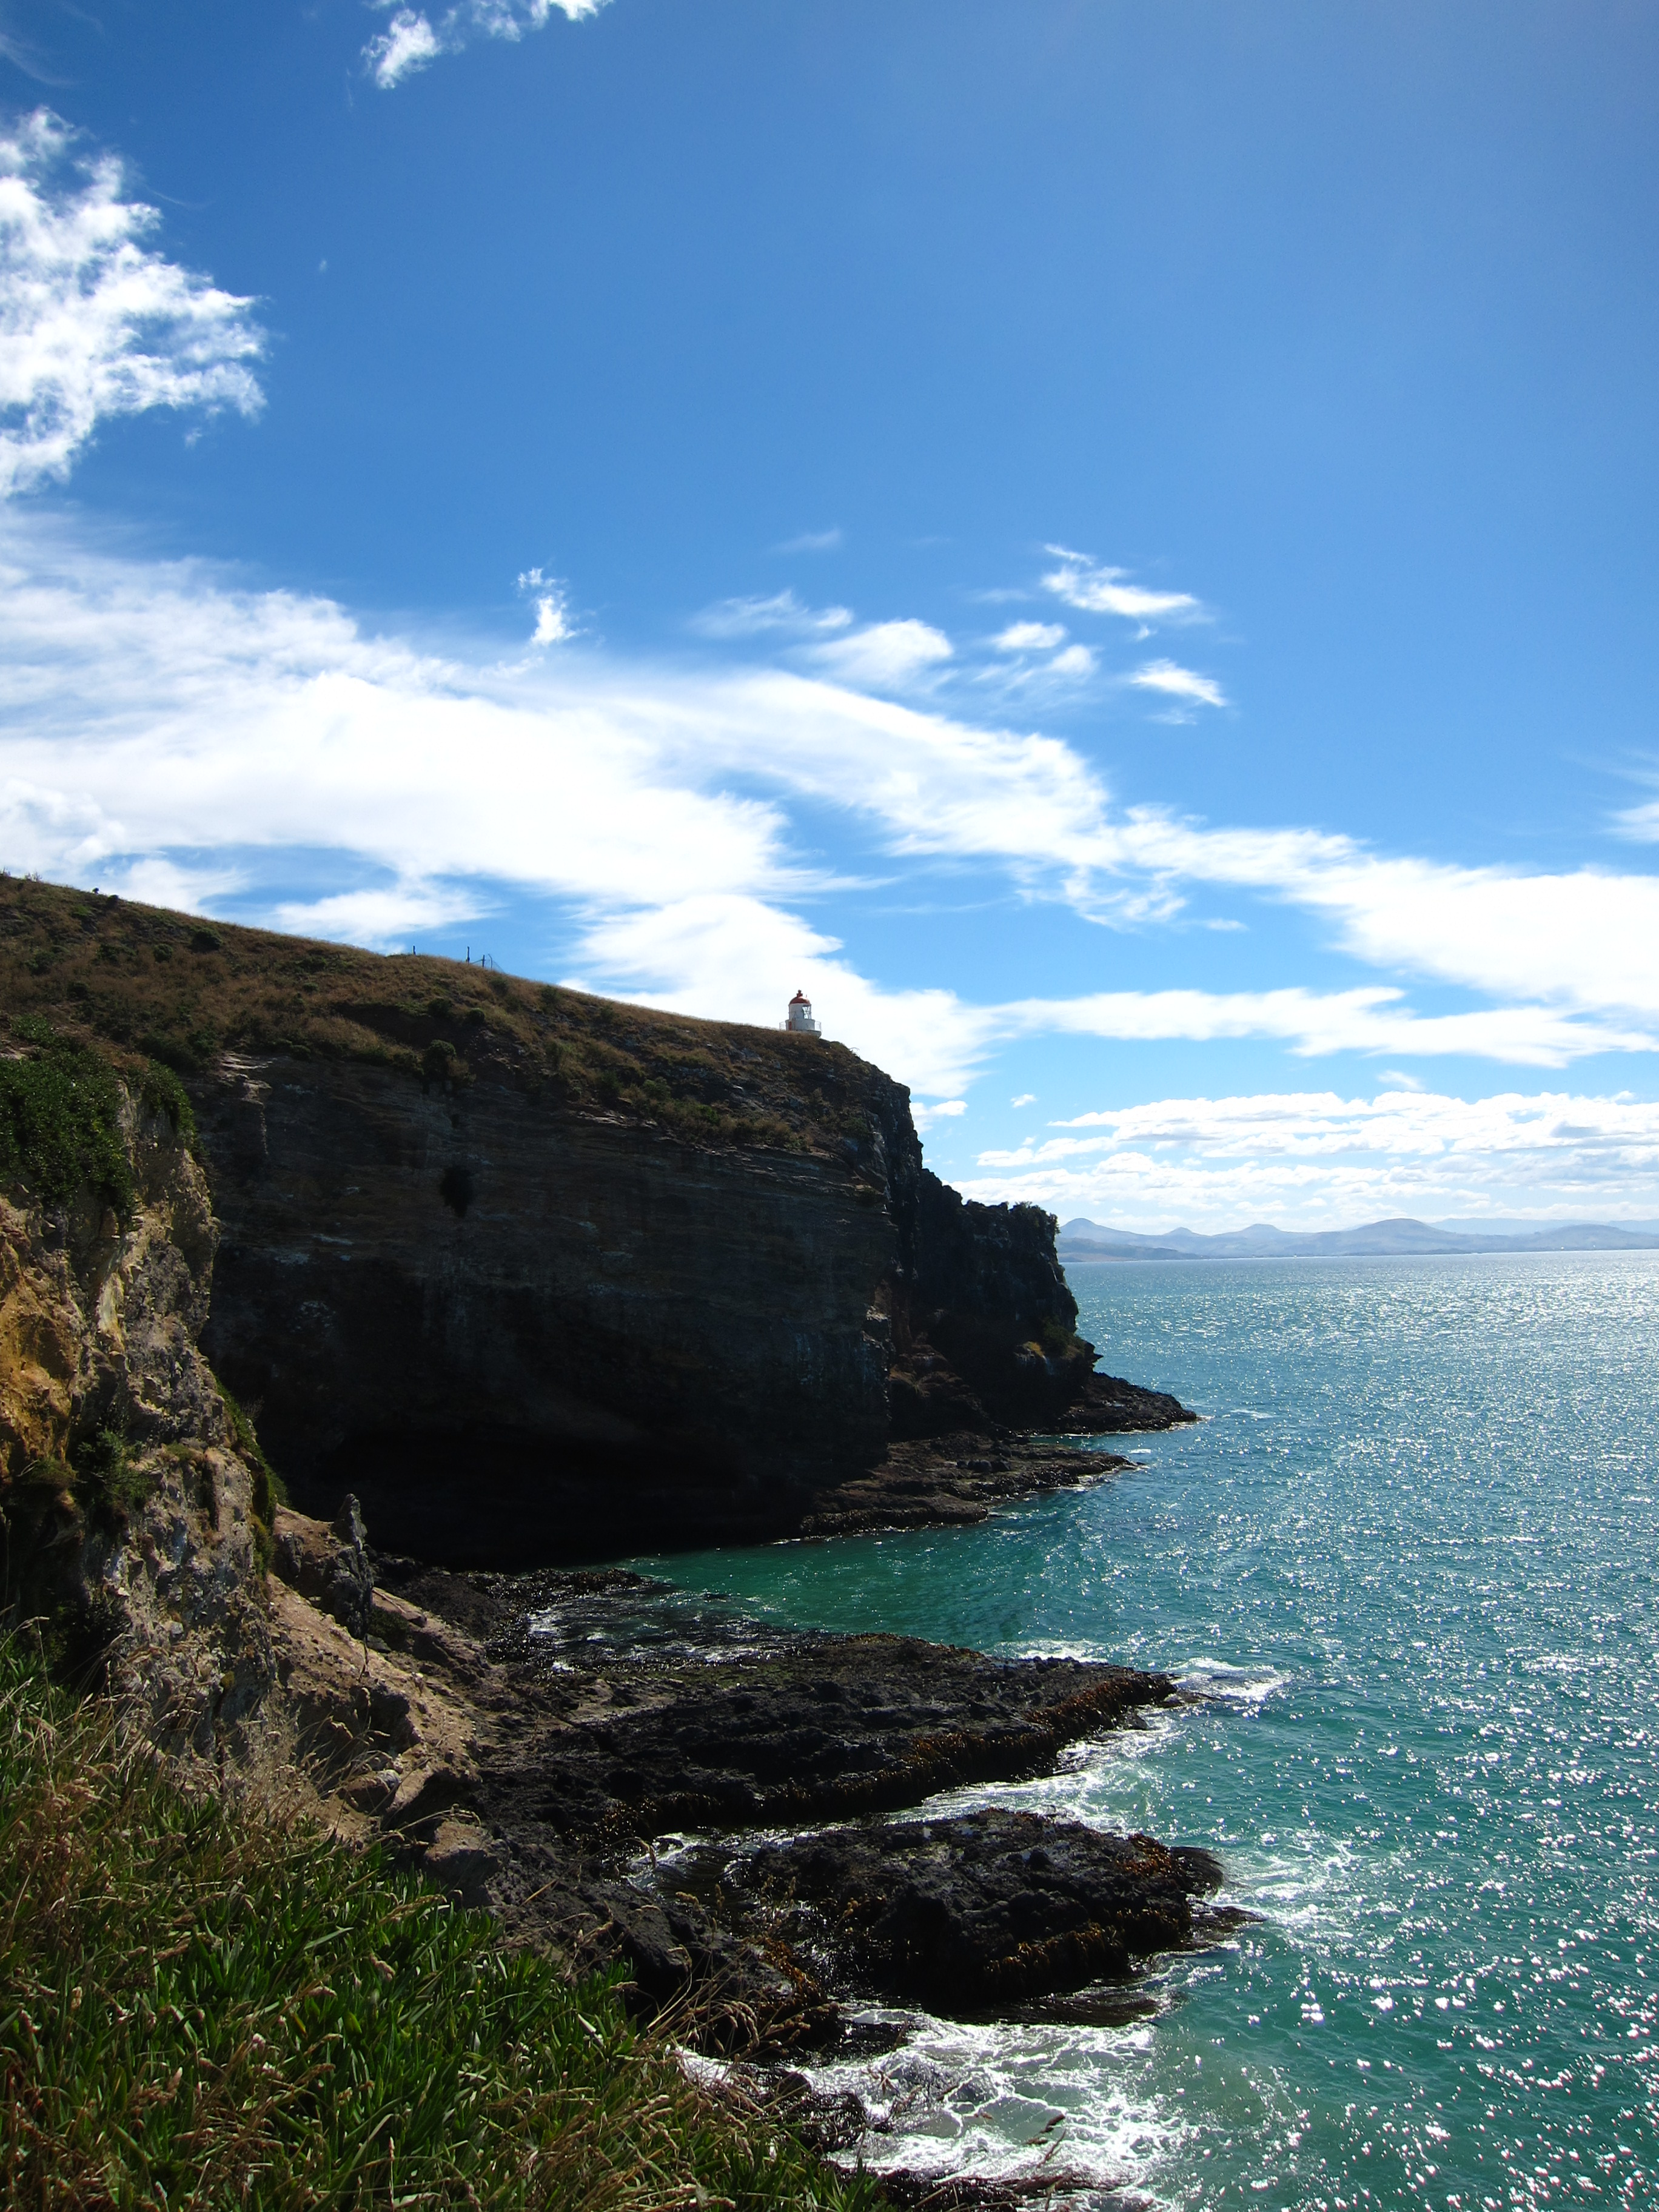 here is where we enjoyed the view of watching an albatross fly around with commode blanc laqu